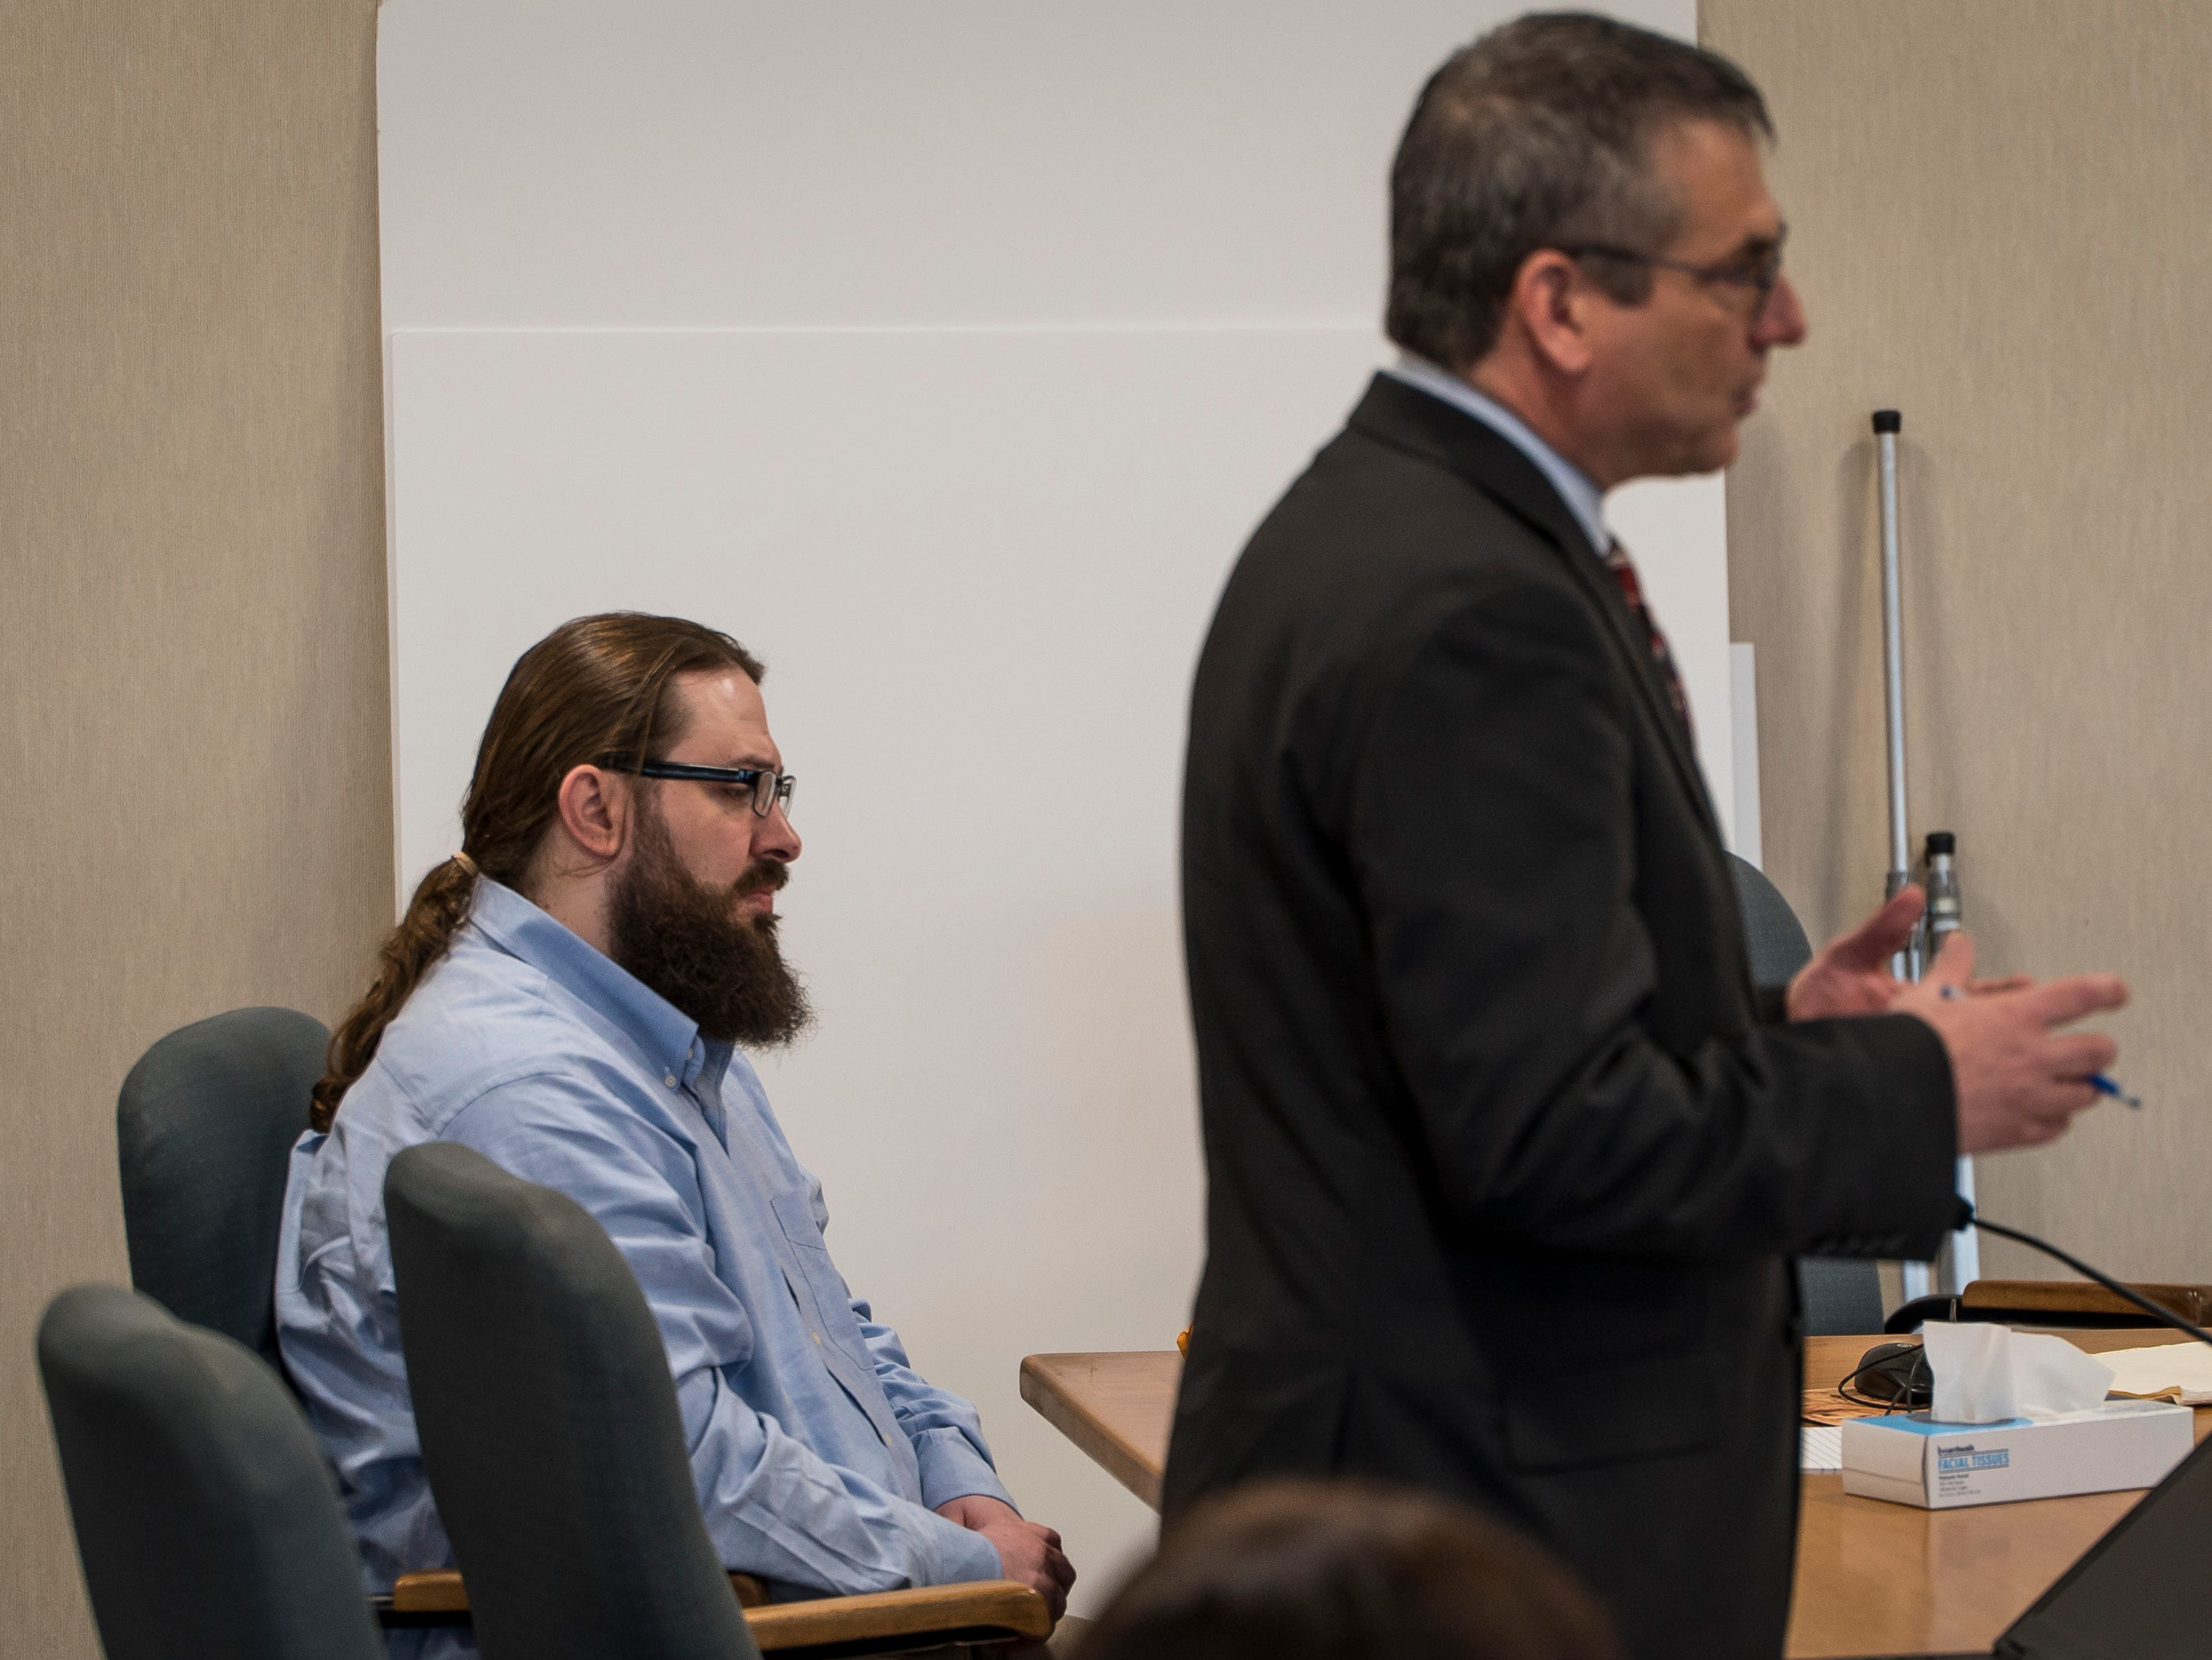 Steven Bourgoin's attorney Bob Katims makes a motion to dismiss second-degree murder charges against his client in Vermont Superior Court in Burlington on Friday, May 10, 2019. A judge denied the motion. Bourgoin faces second-degree murder charges in the deaths of 5 teens killed in a crash on I89 in 2016 and Katims argued that Bourgoin was suffering from mental illness when he drove up the highway the wrong way, colliding with the car-full of teens. The state says Bourgoin deliberately crashed into them and then stole a police car and drove it into the same crash scene at more than 100 mph.